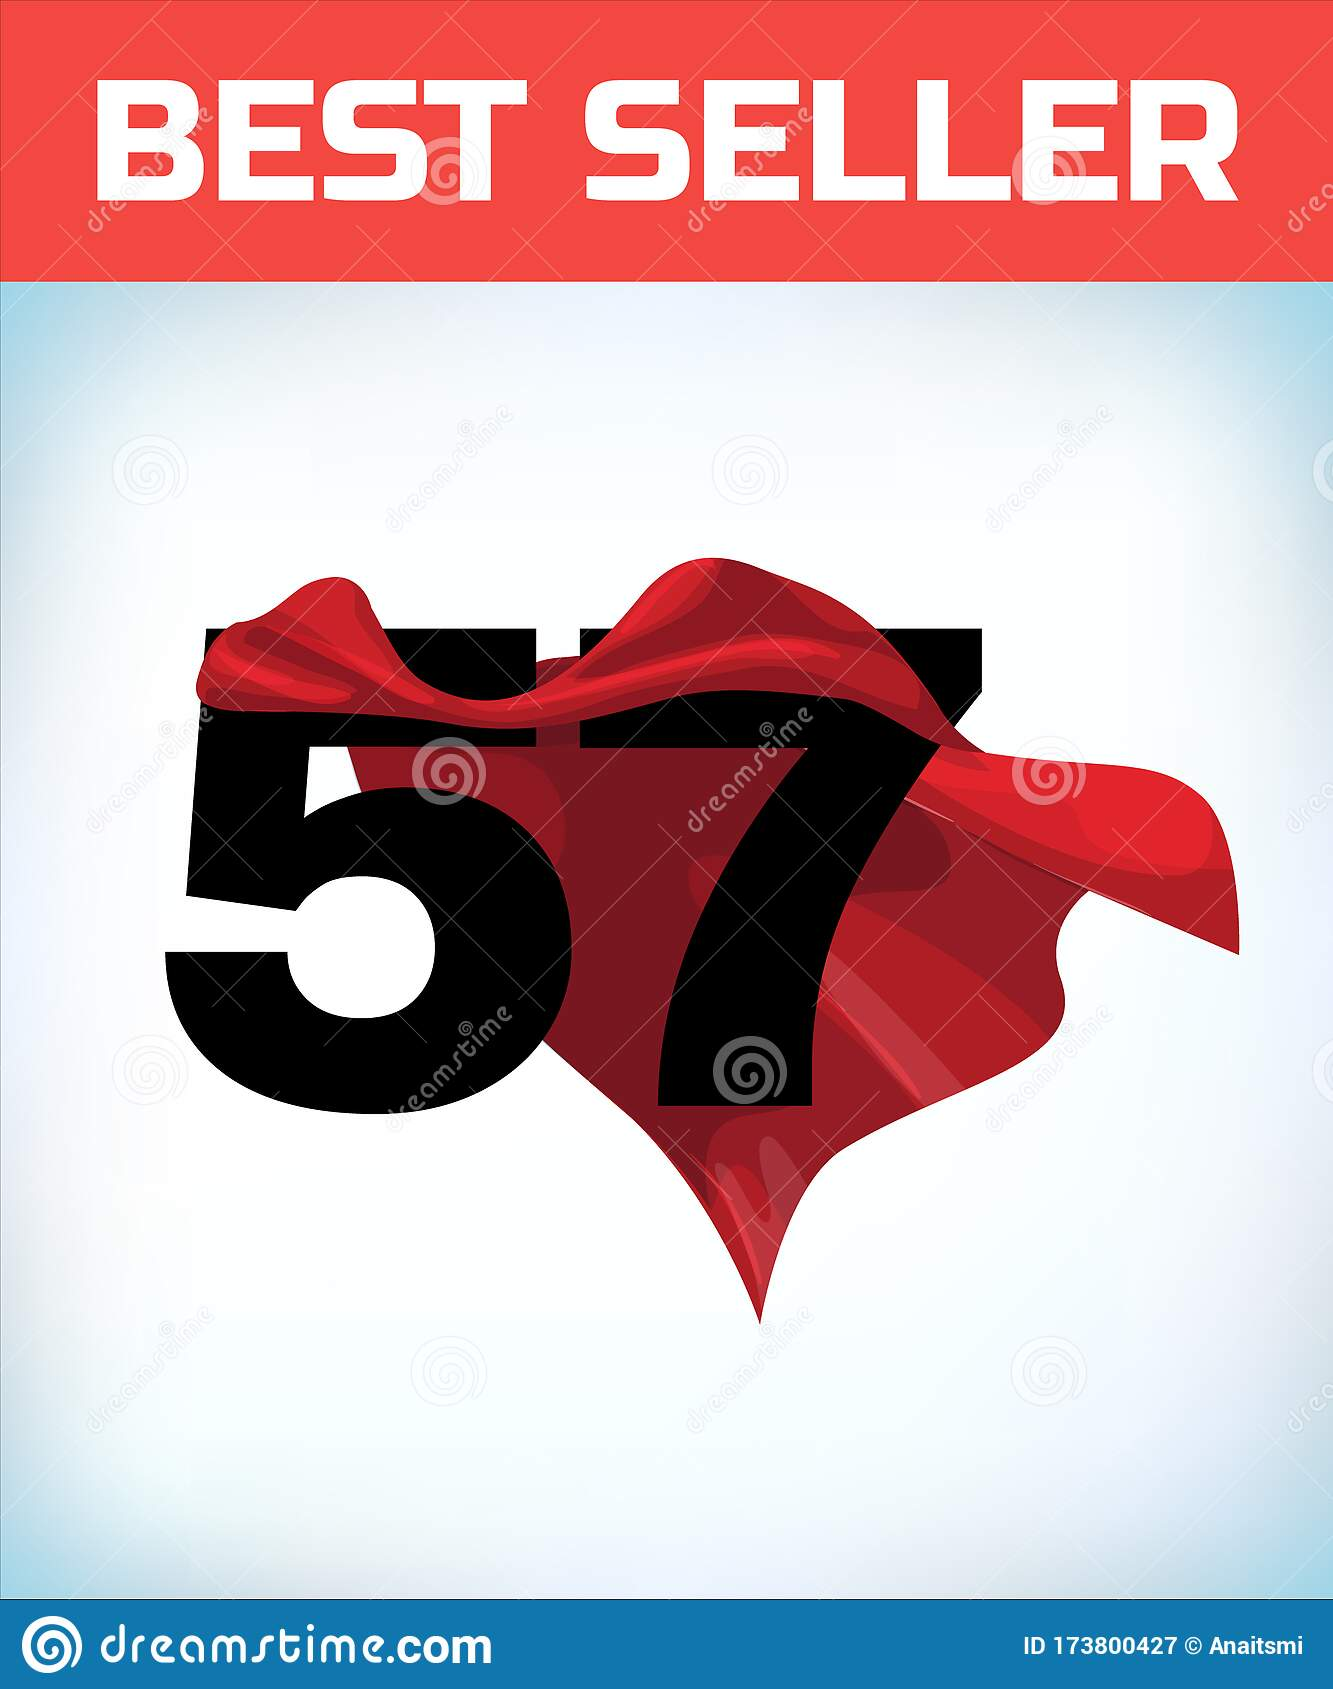 Arabic Number Fifty Seven In The Red Cloak Of The Winner